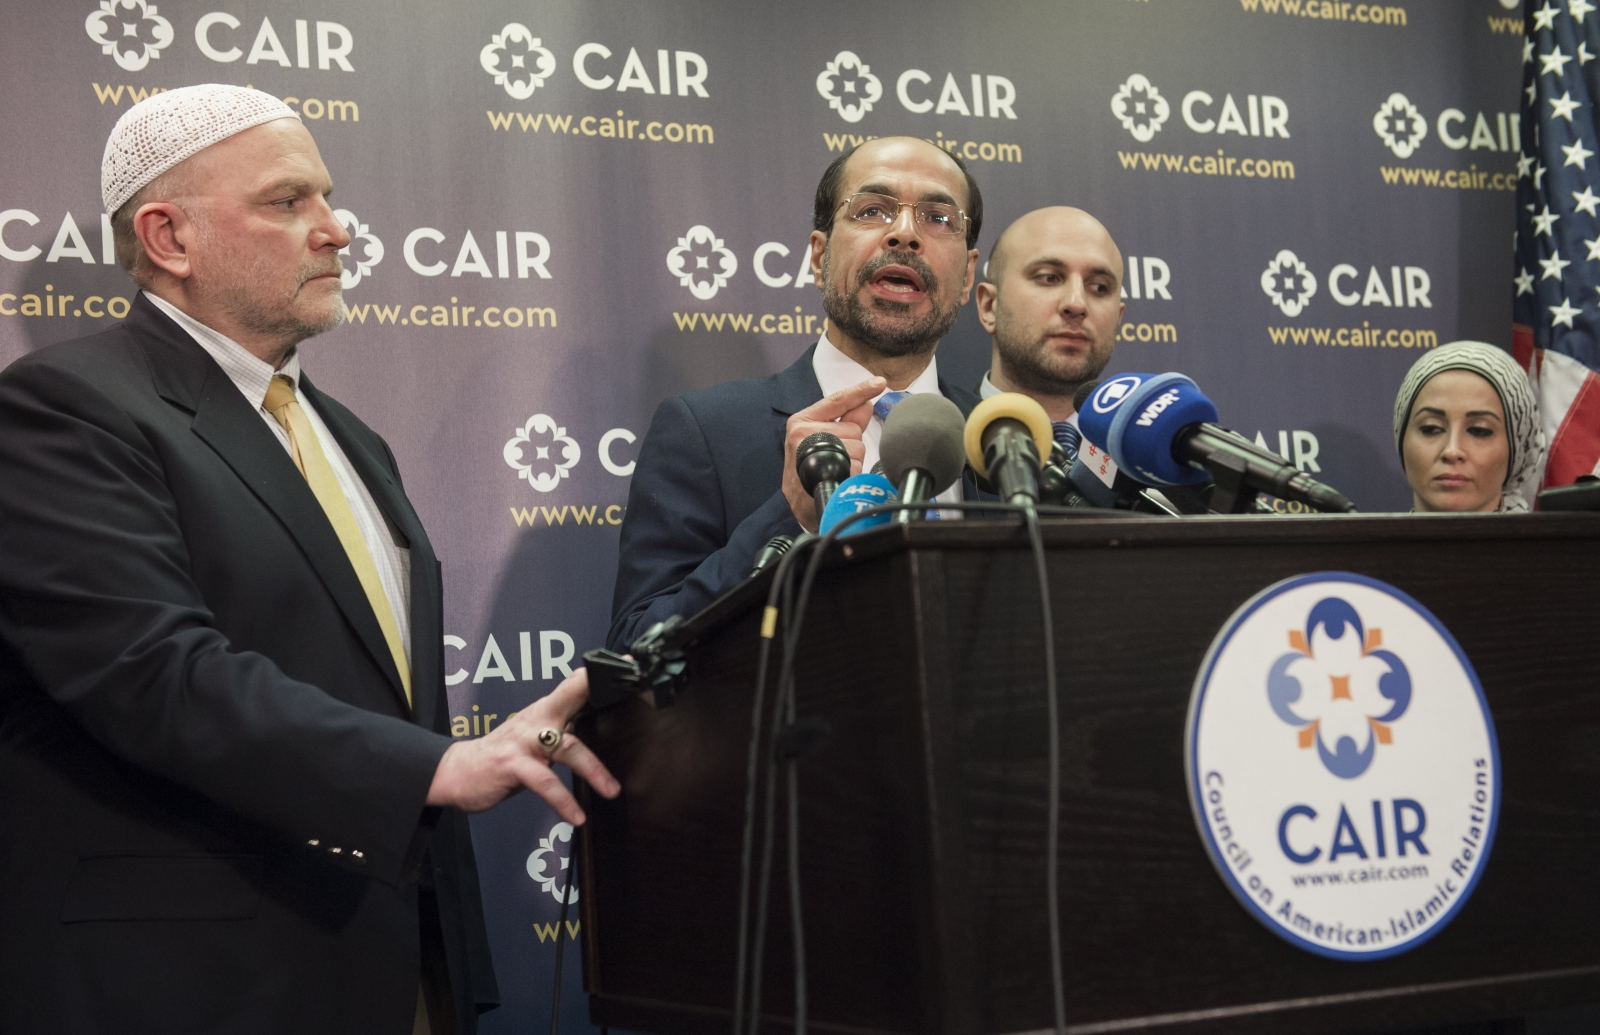 Cair Federal Lawsuit Travel Ban